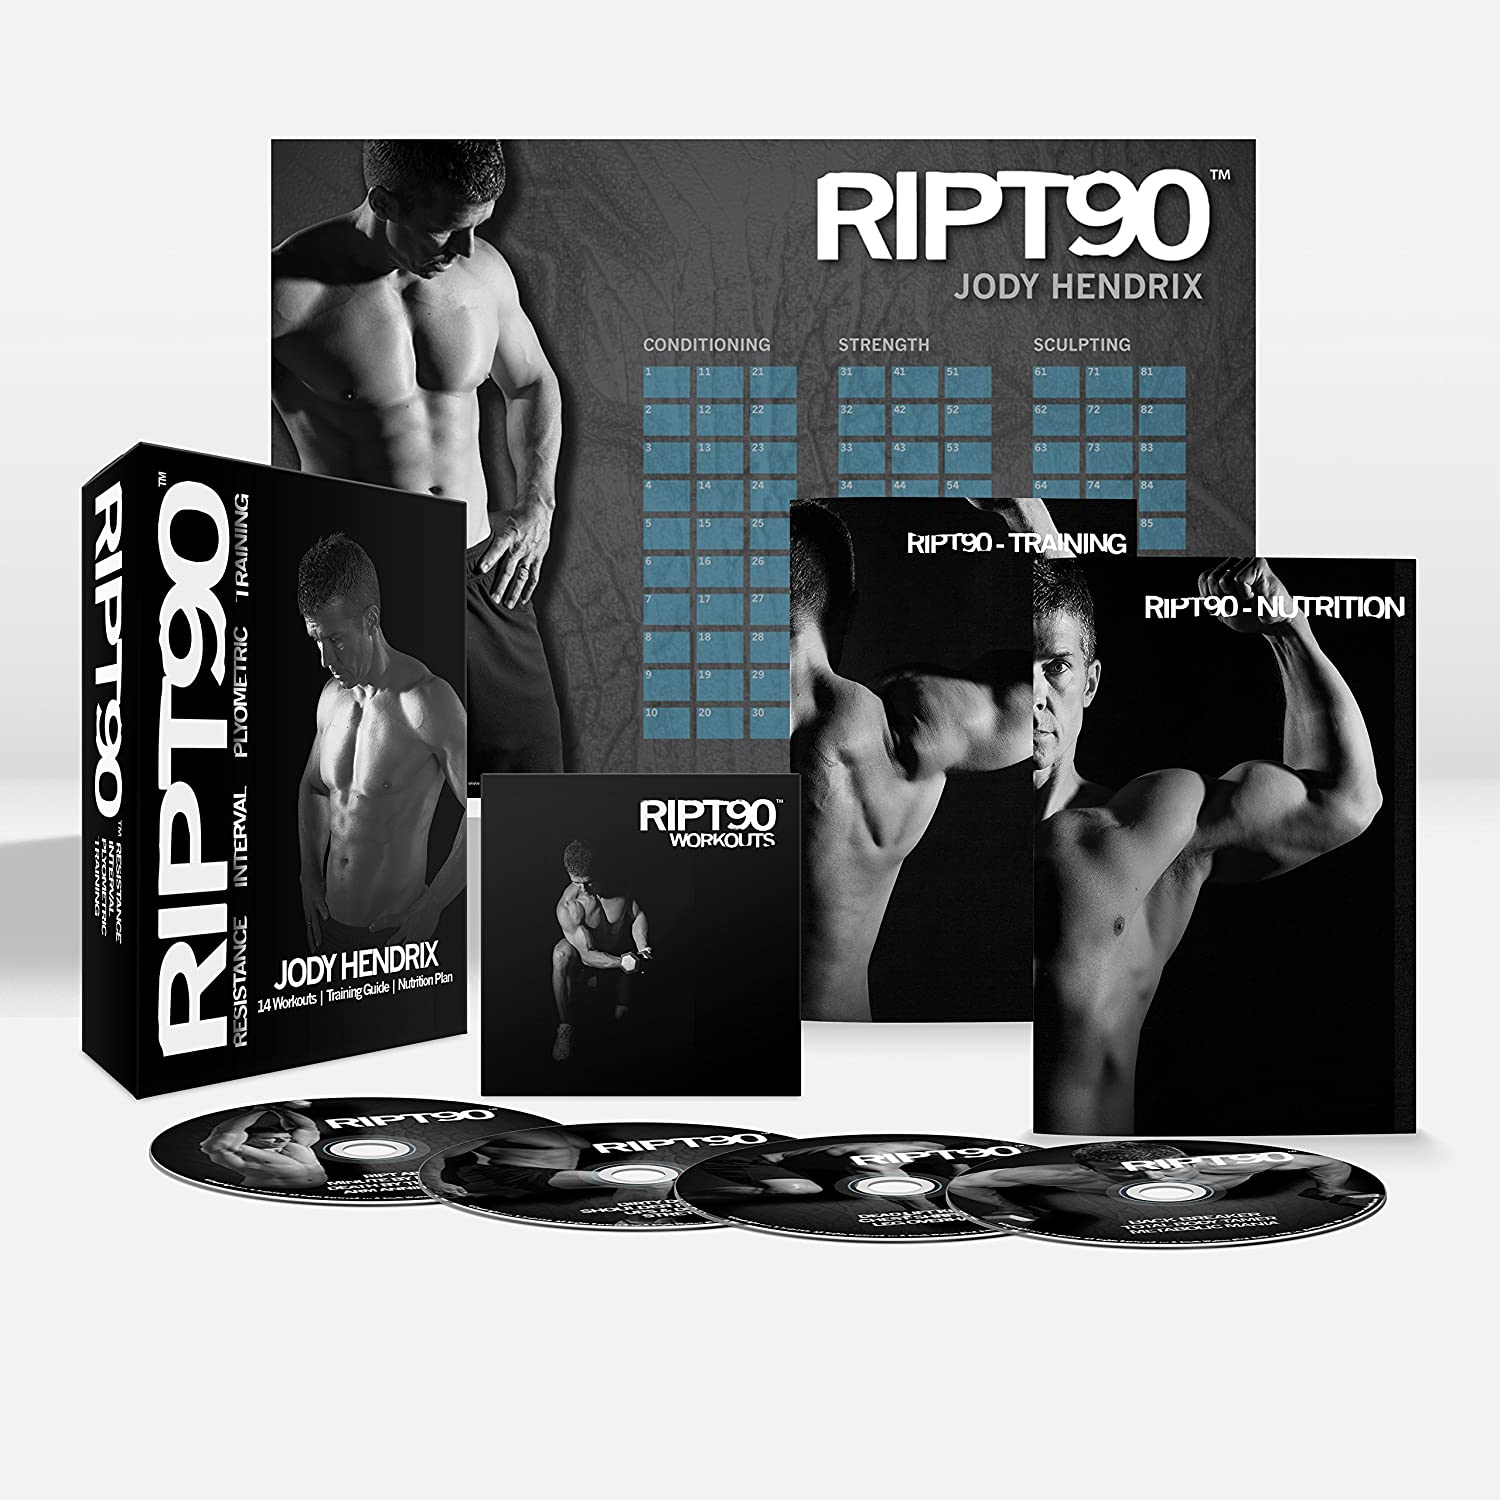 RIPT90: Get Ripped in 90 Days - Complete Home Fitness - 14 ...